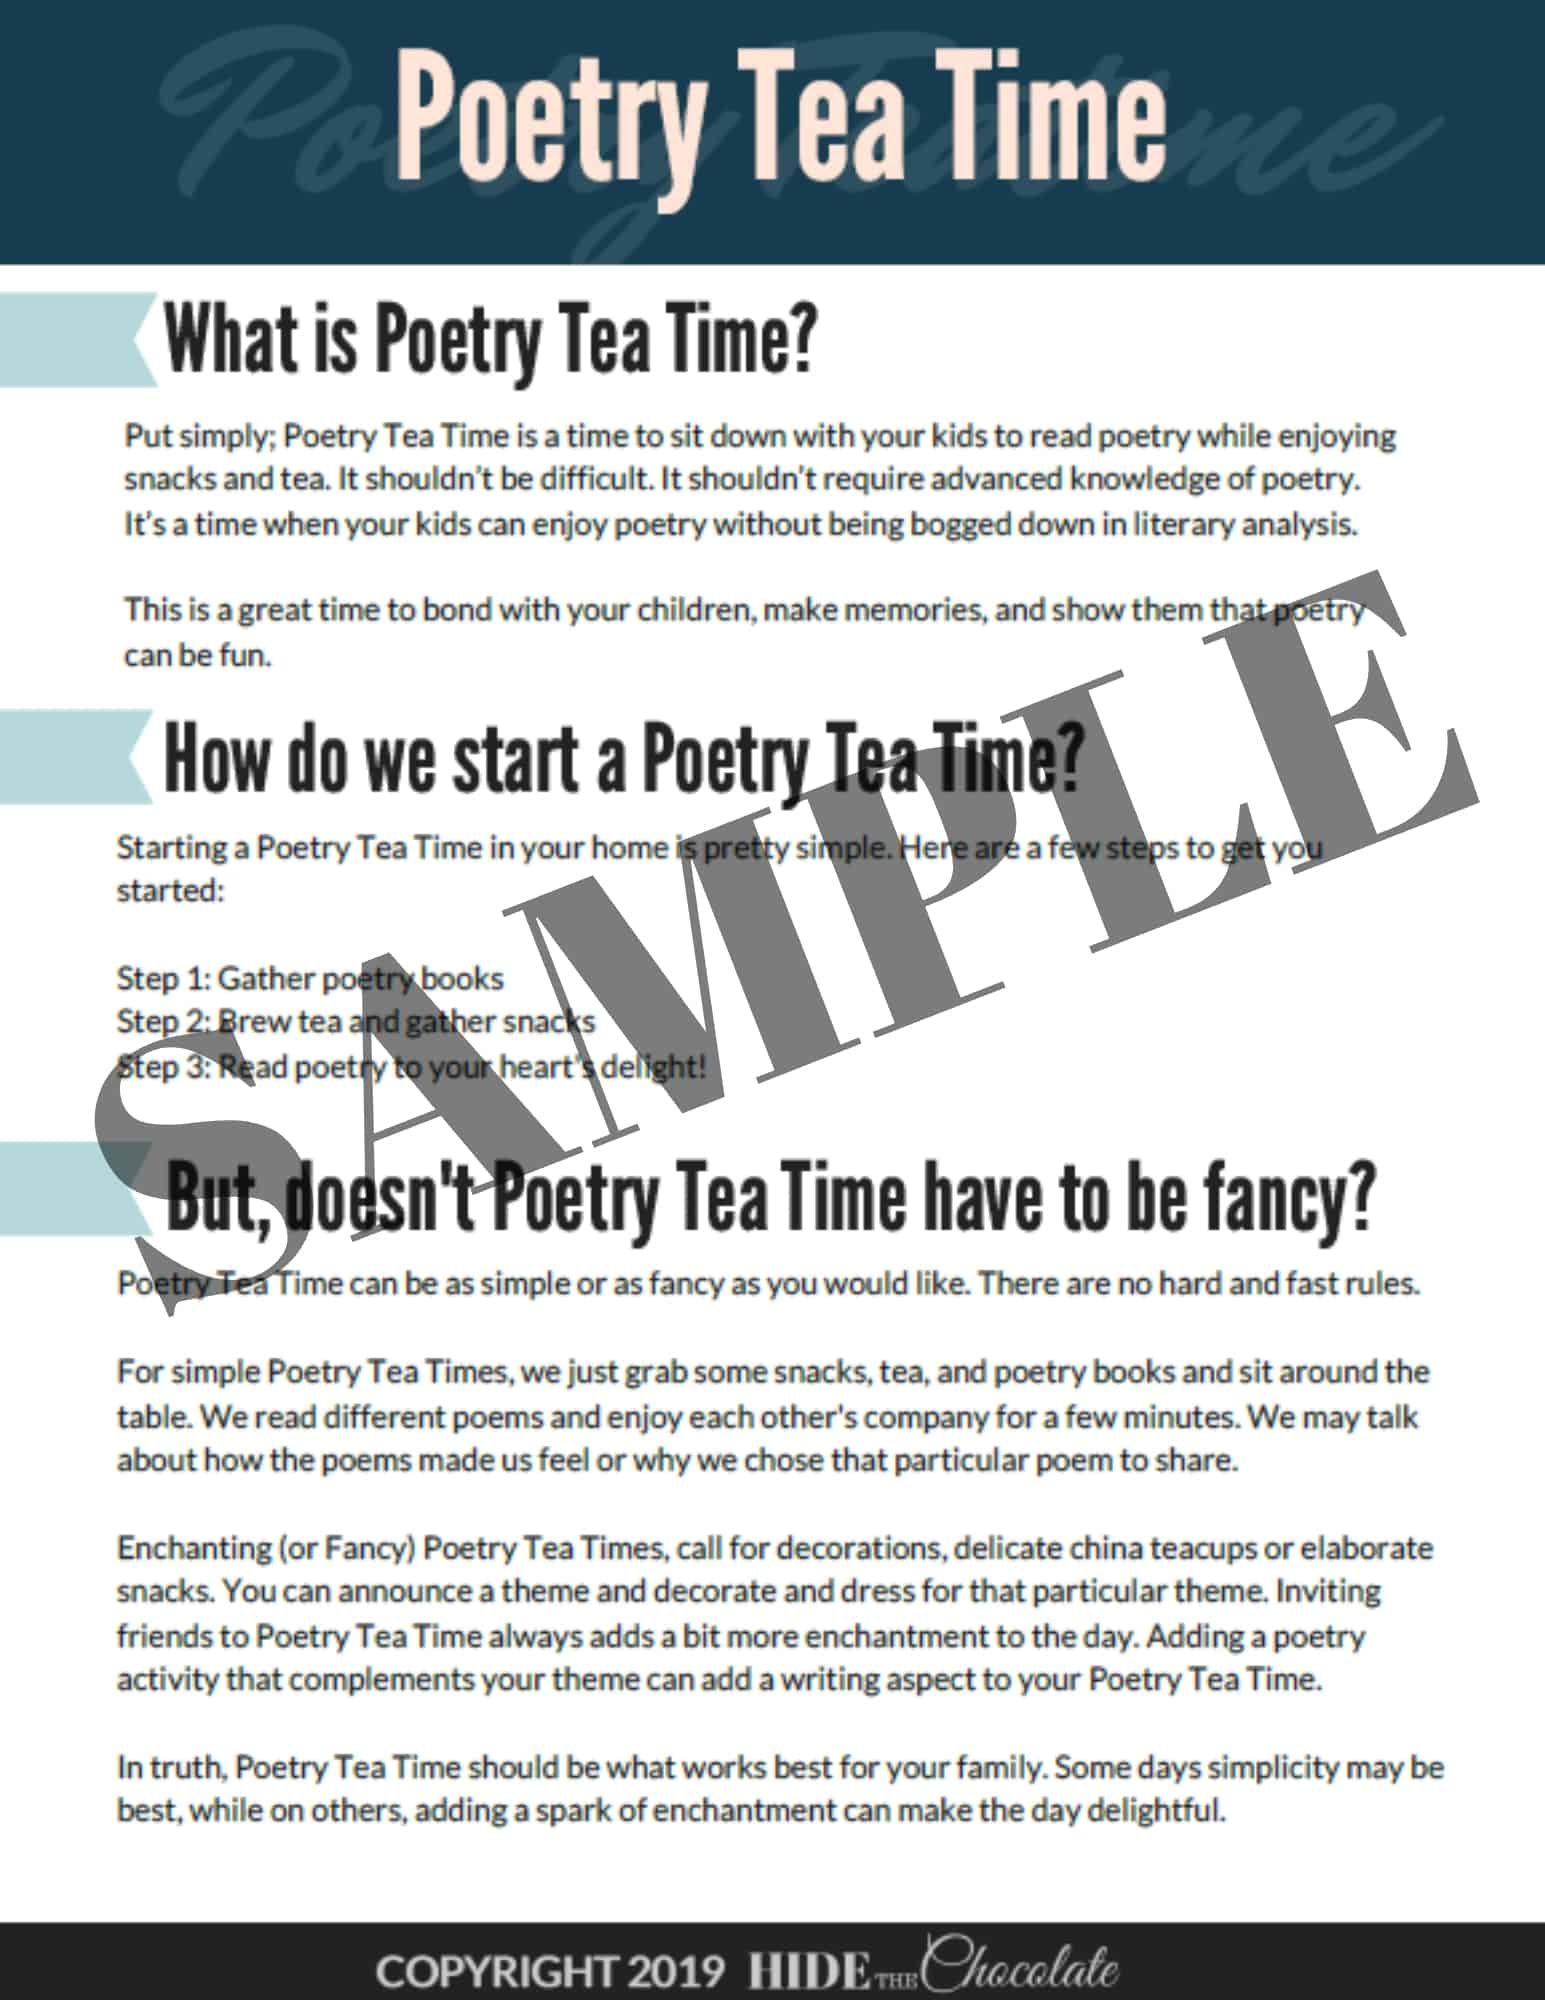 Poetry Teatime Sample